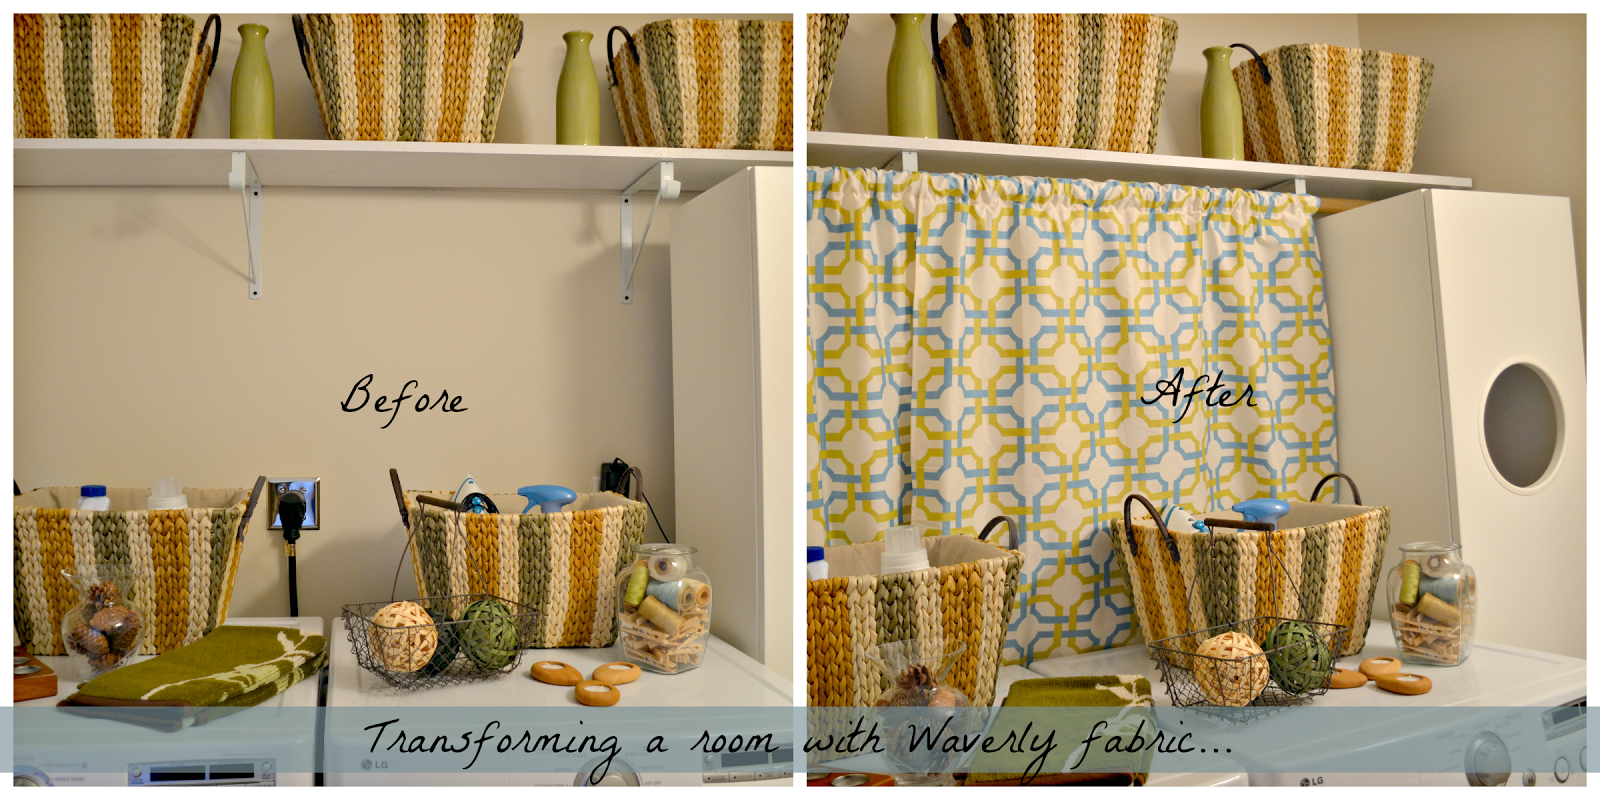 the life of jennifer dawn: transforming a room with waverly fabric